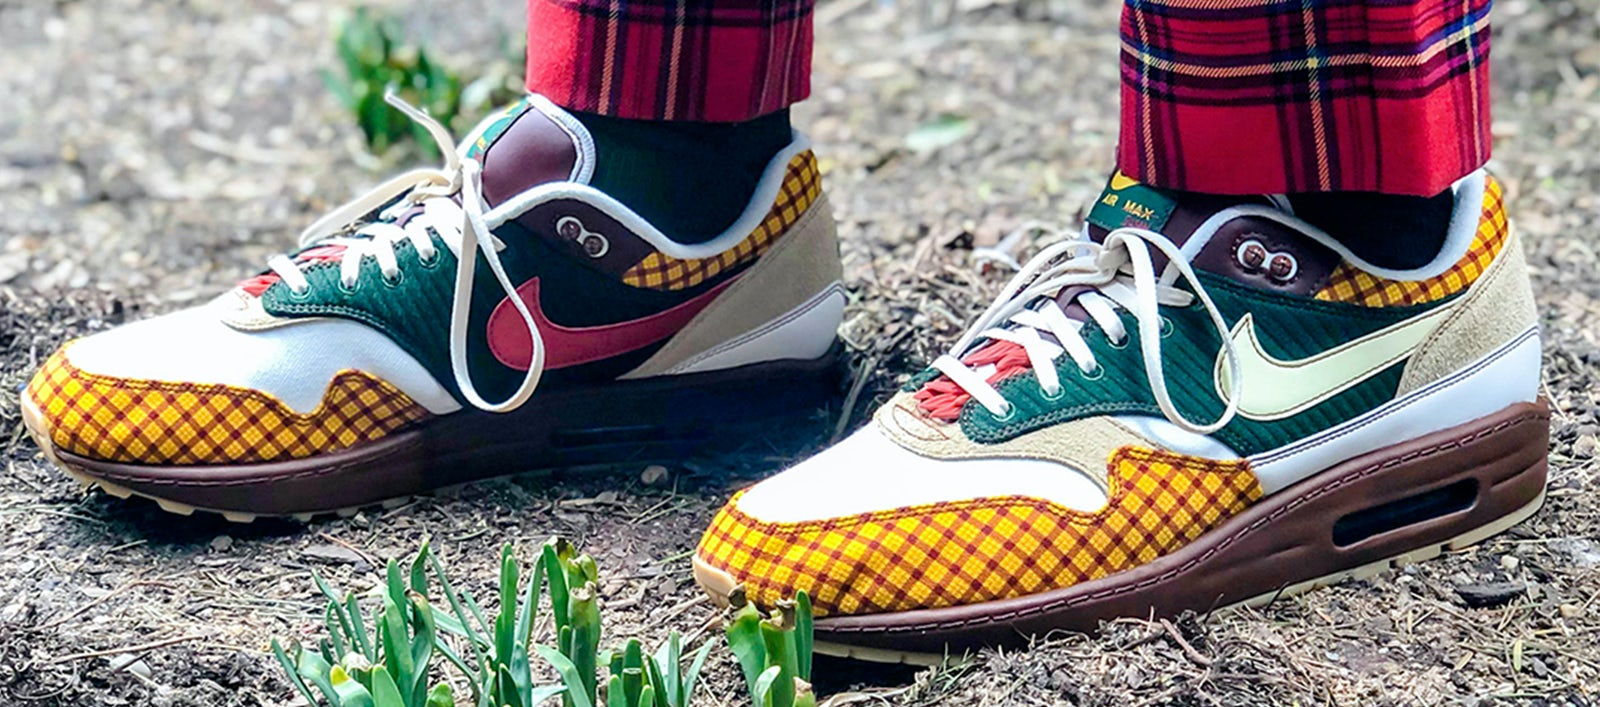 Nike Air Max Susan First Look and Release Details    ONE37pm 0b8c9a3bc